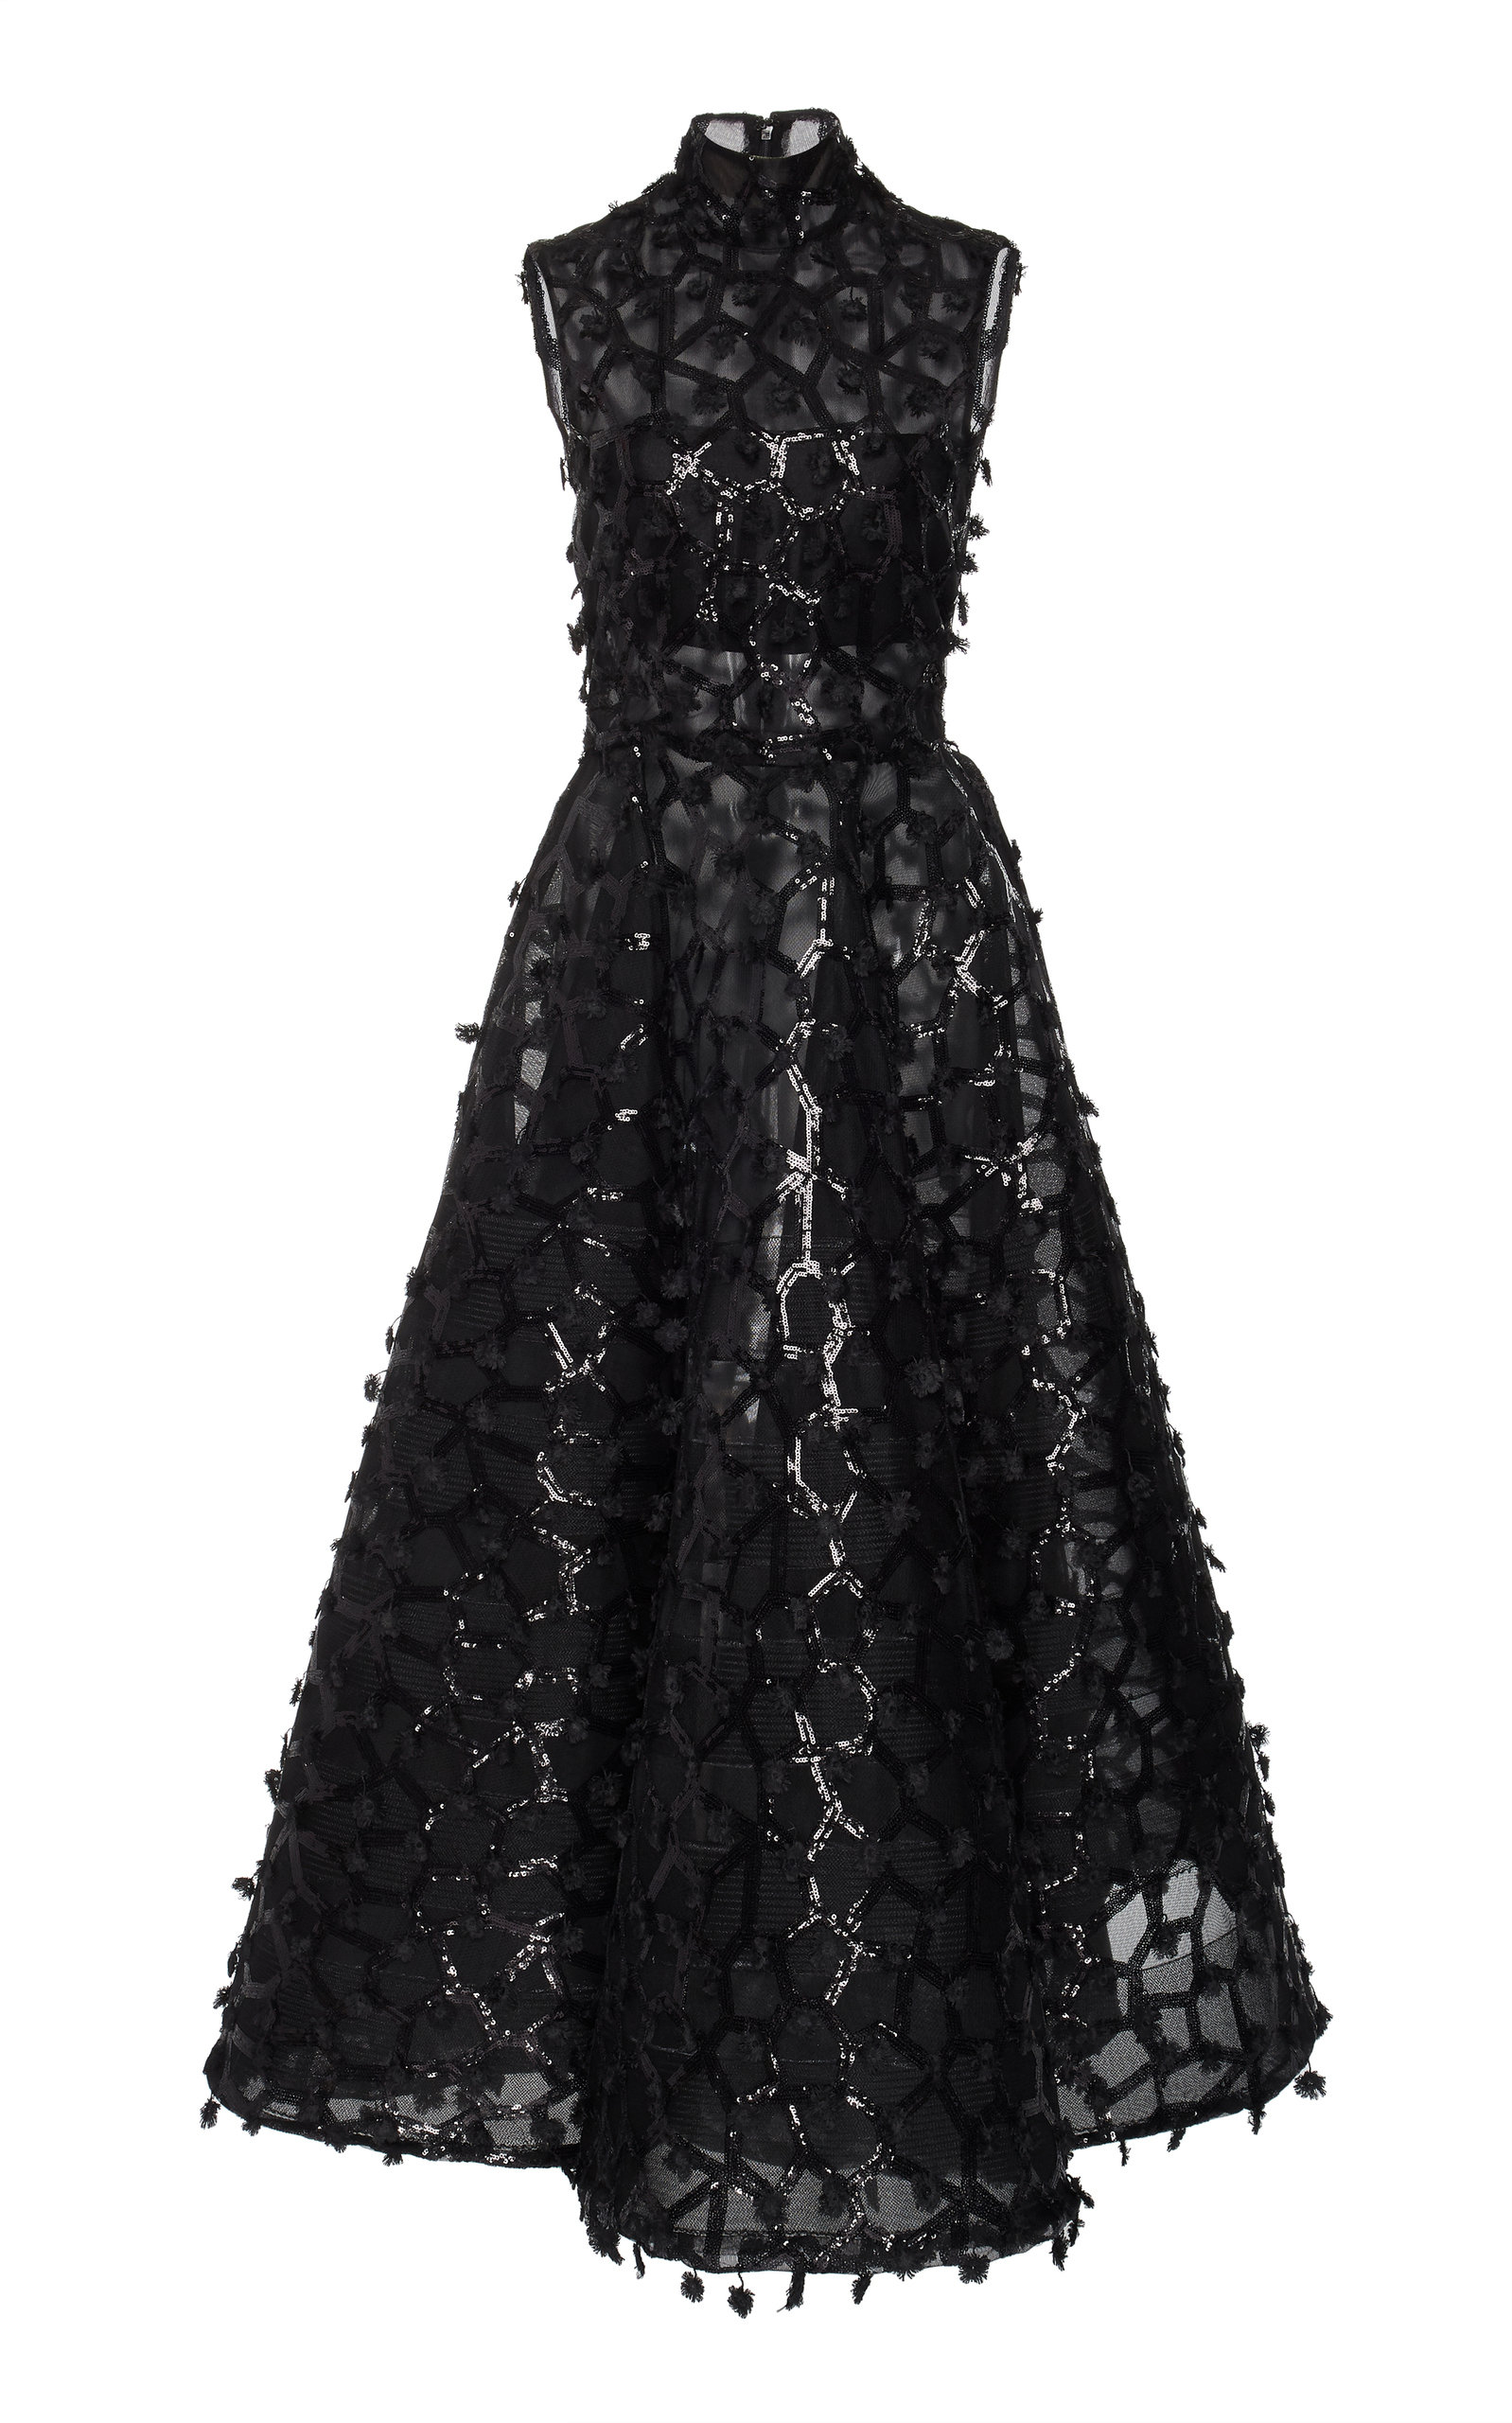 Christian Siriano SEQUIN EMBELLISHED TEA LENGTH DRESS